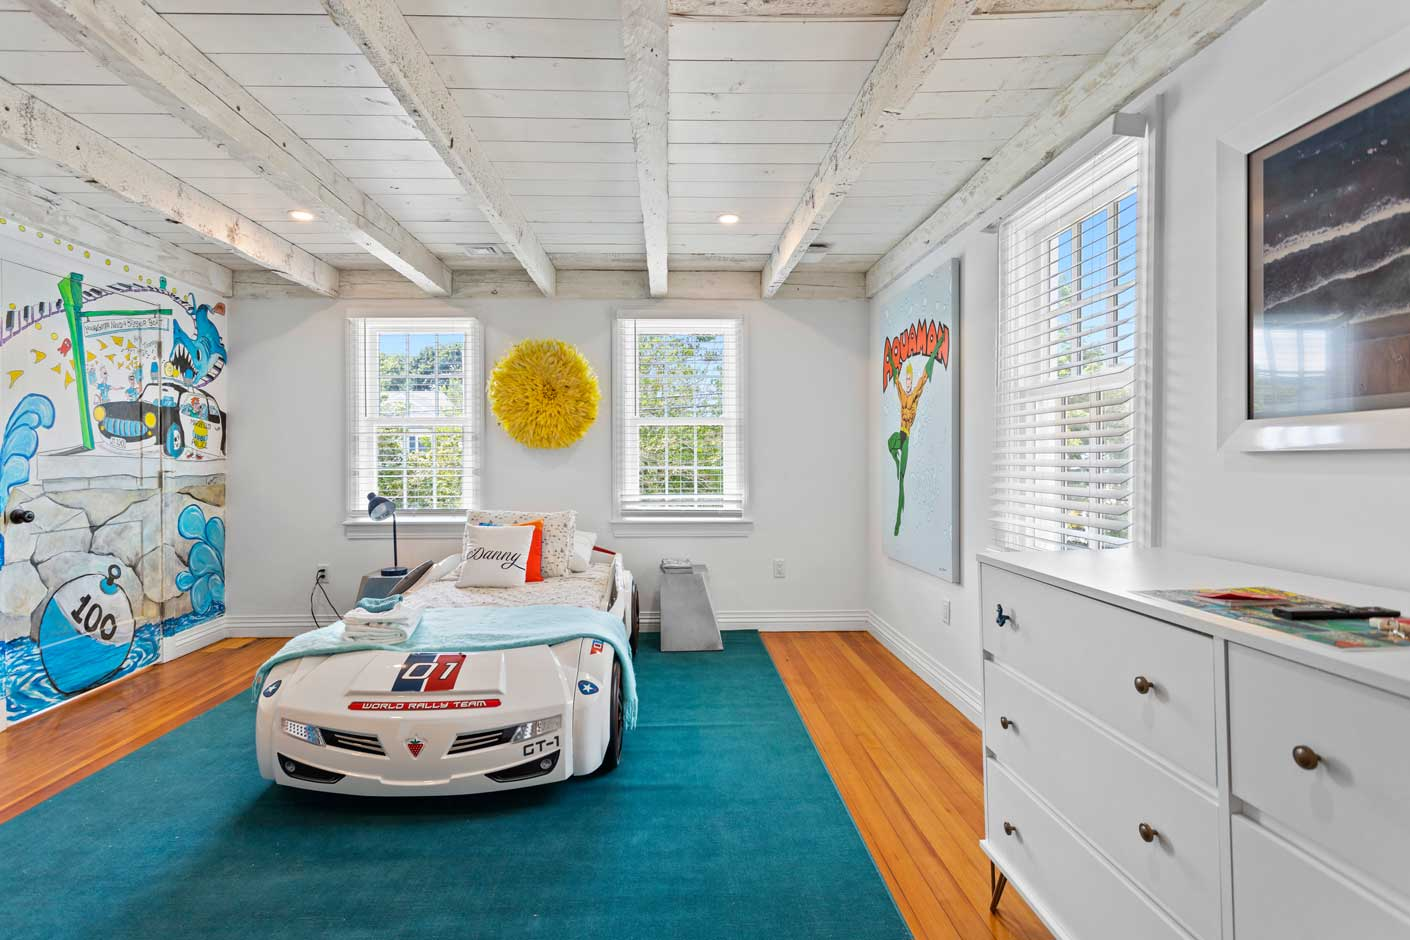 bedroom with race car bed